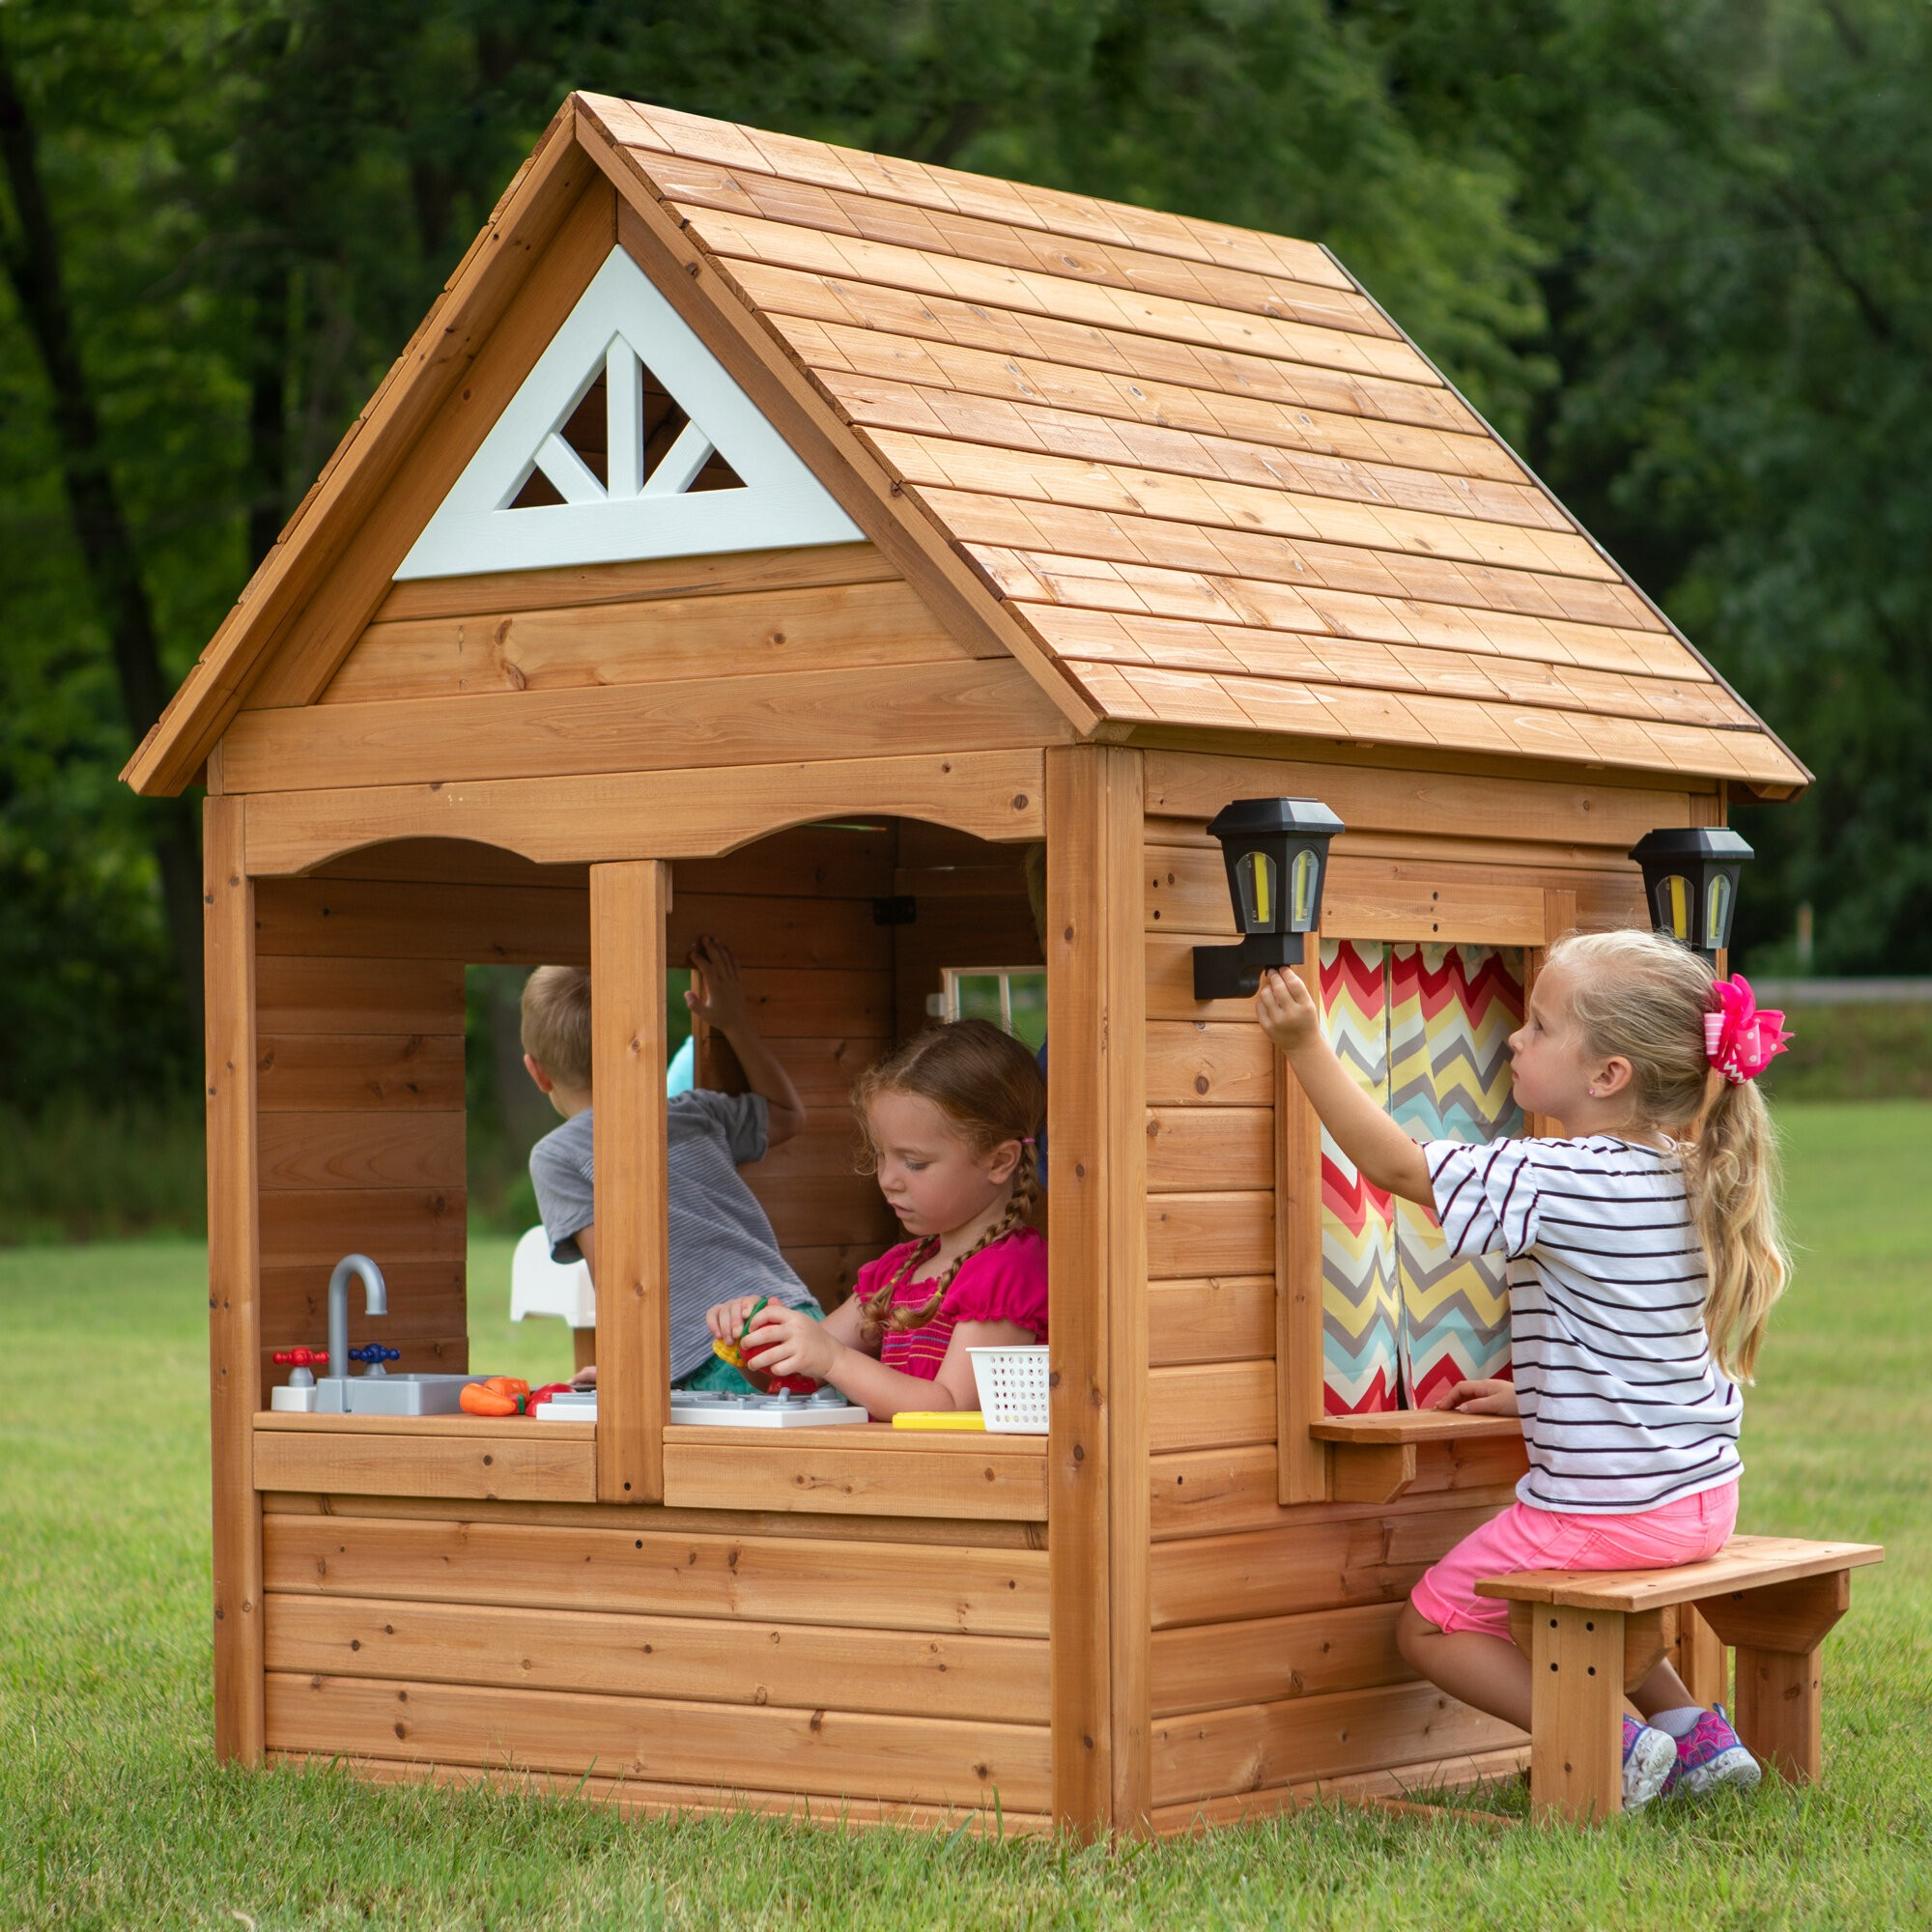 Kids Hunting Cabin Tent Playhouse Indoor Outdoor Play Cottage Sports Toy House